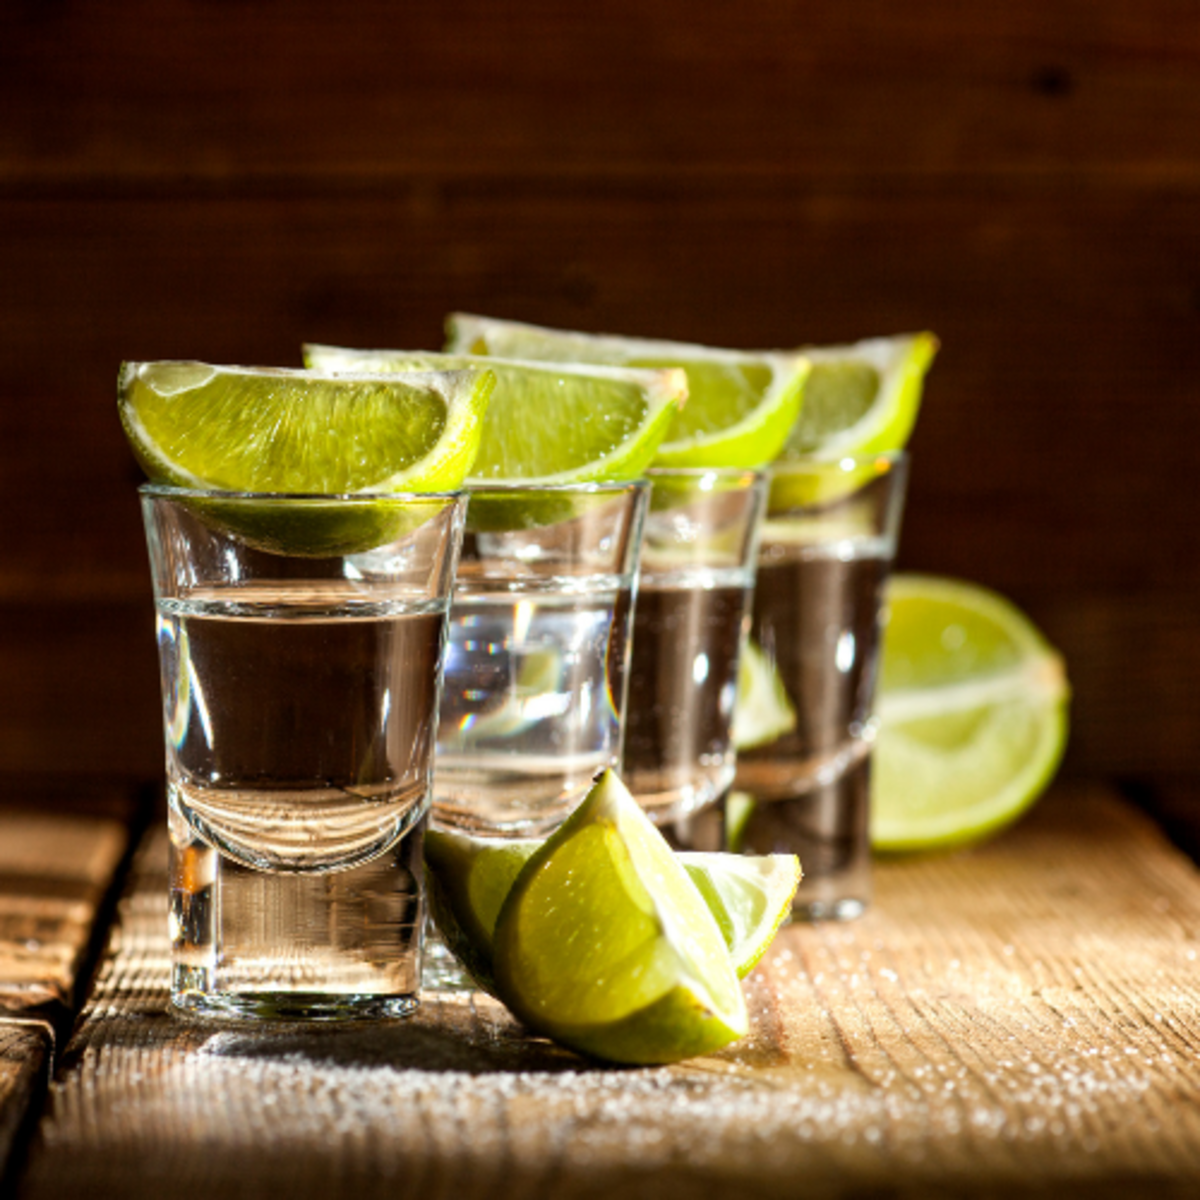 Is Alcohol Derailing Your Weight Loss Goals?